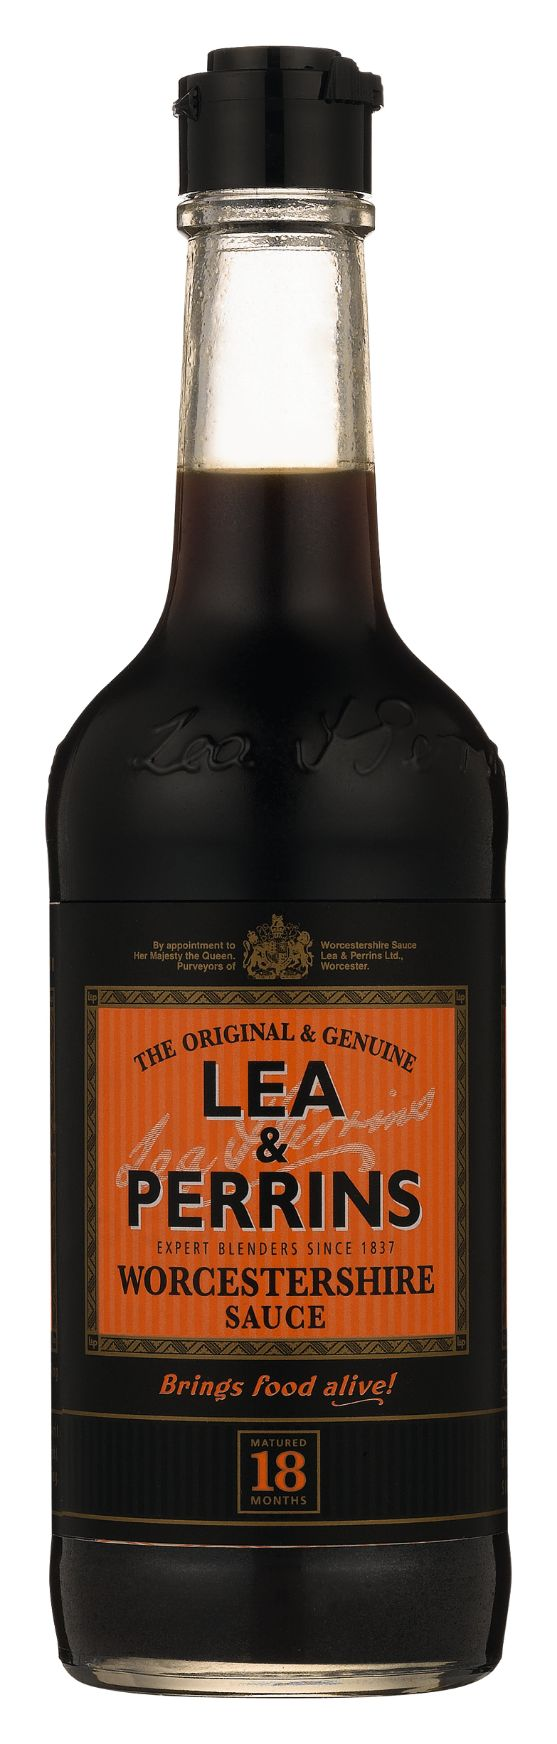 Lea & Perrins Worcestershire Sauce 290ml image